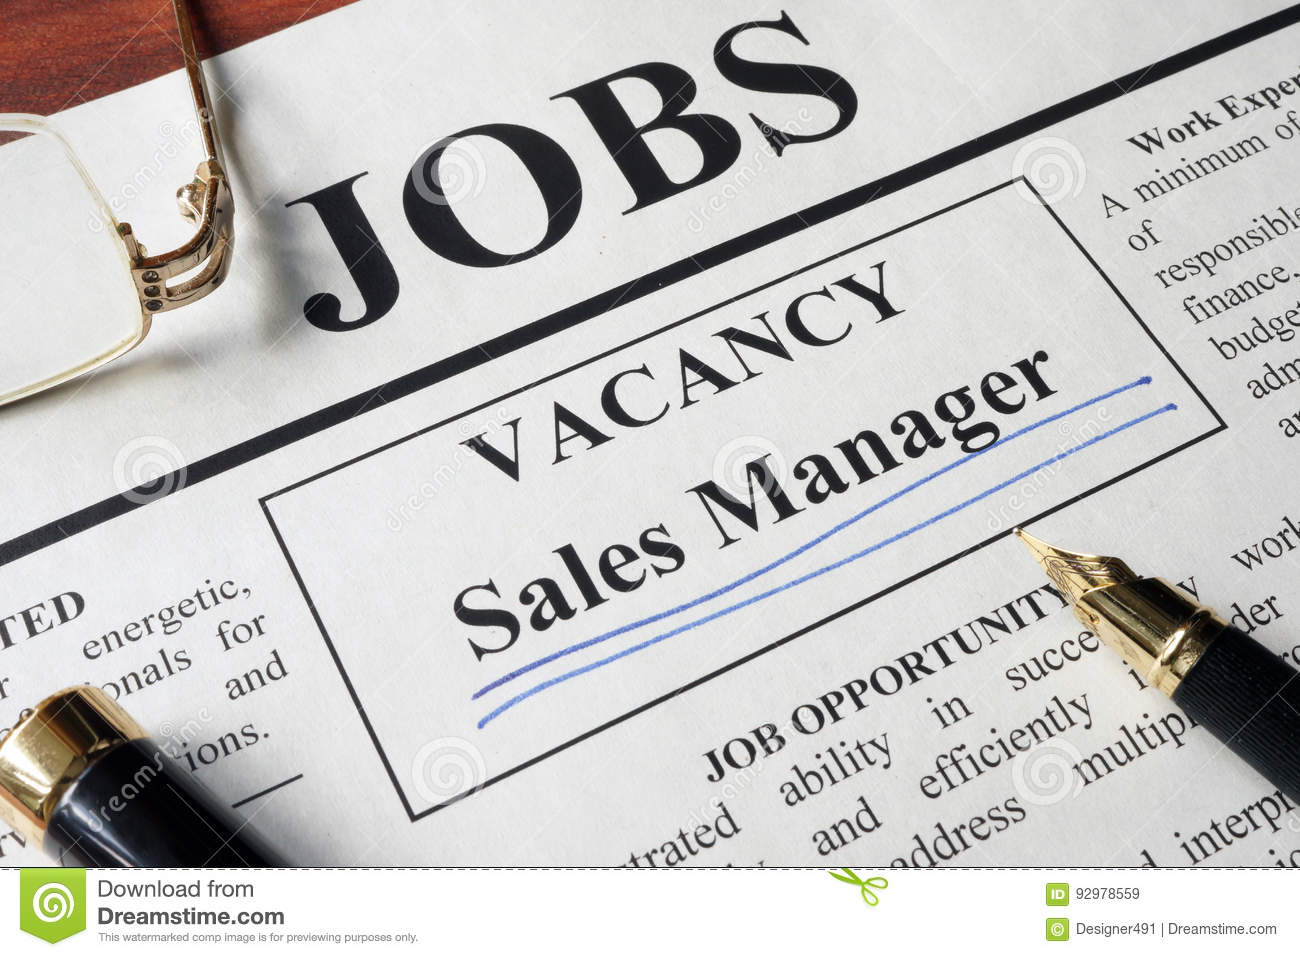 Newspaper with ads for vacancy sales manager.